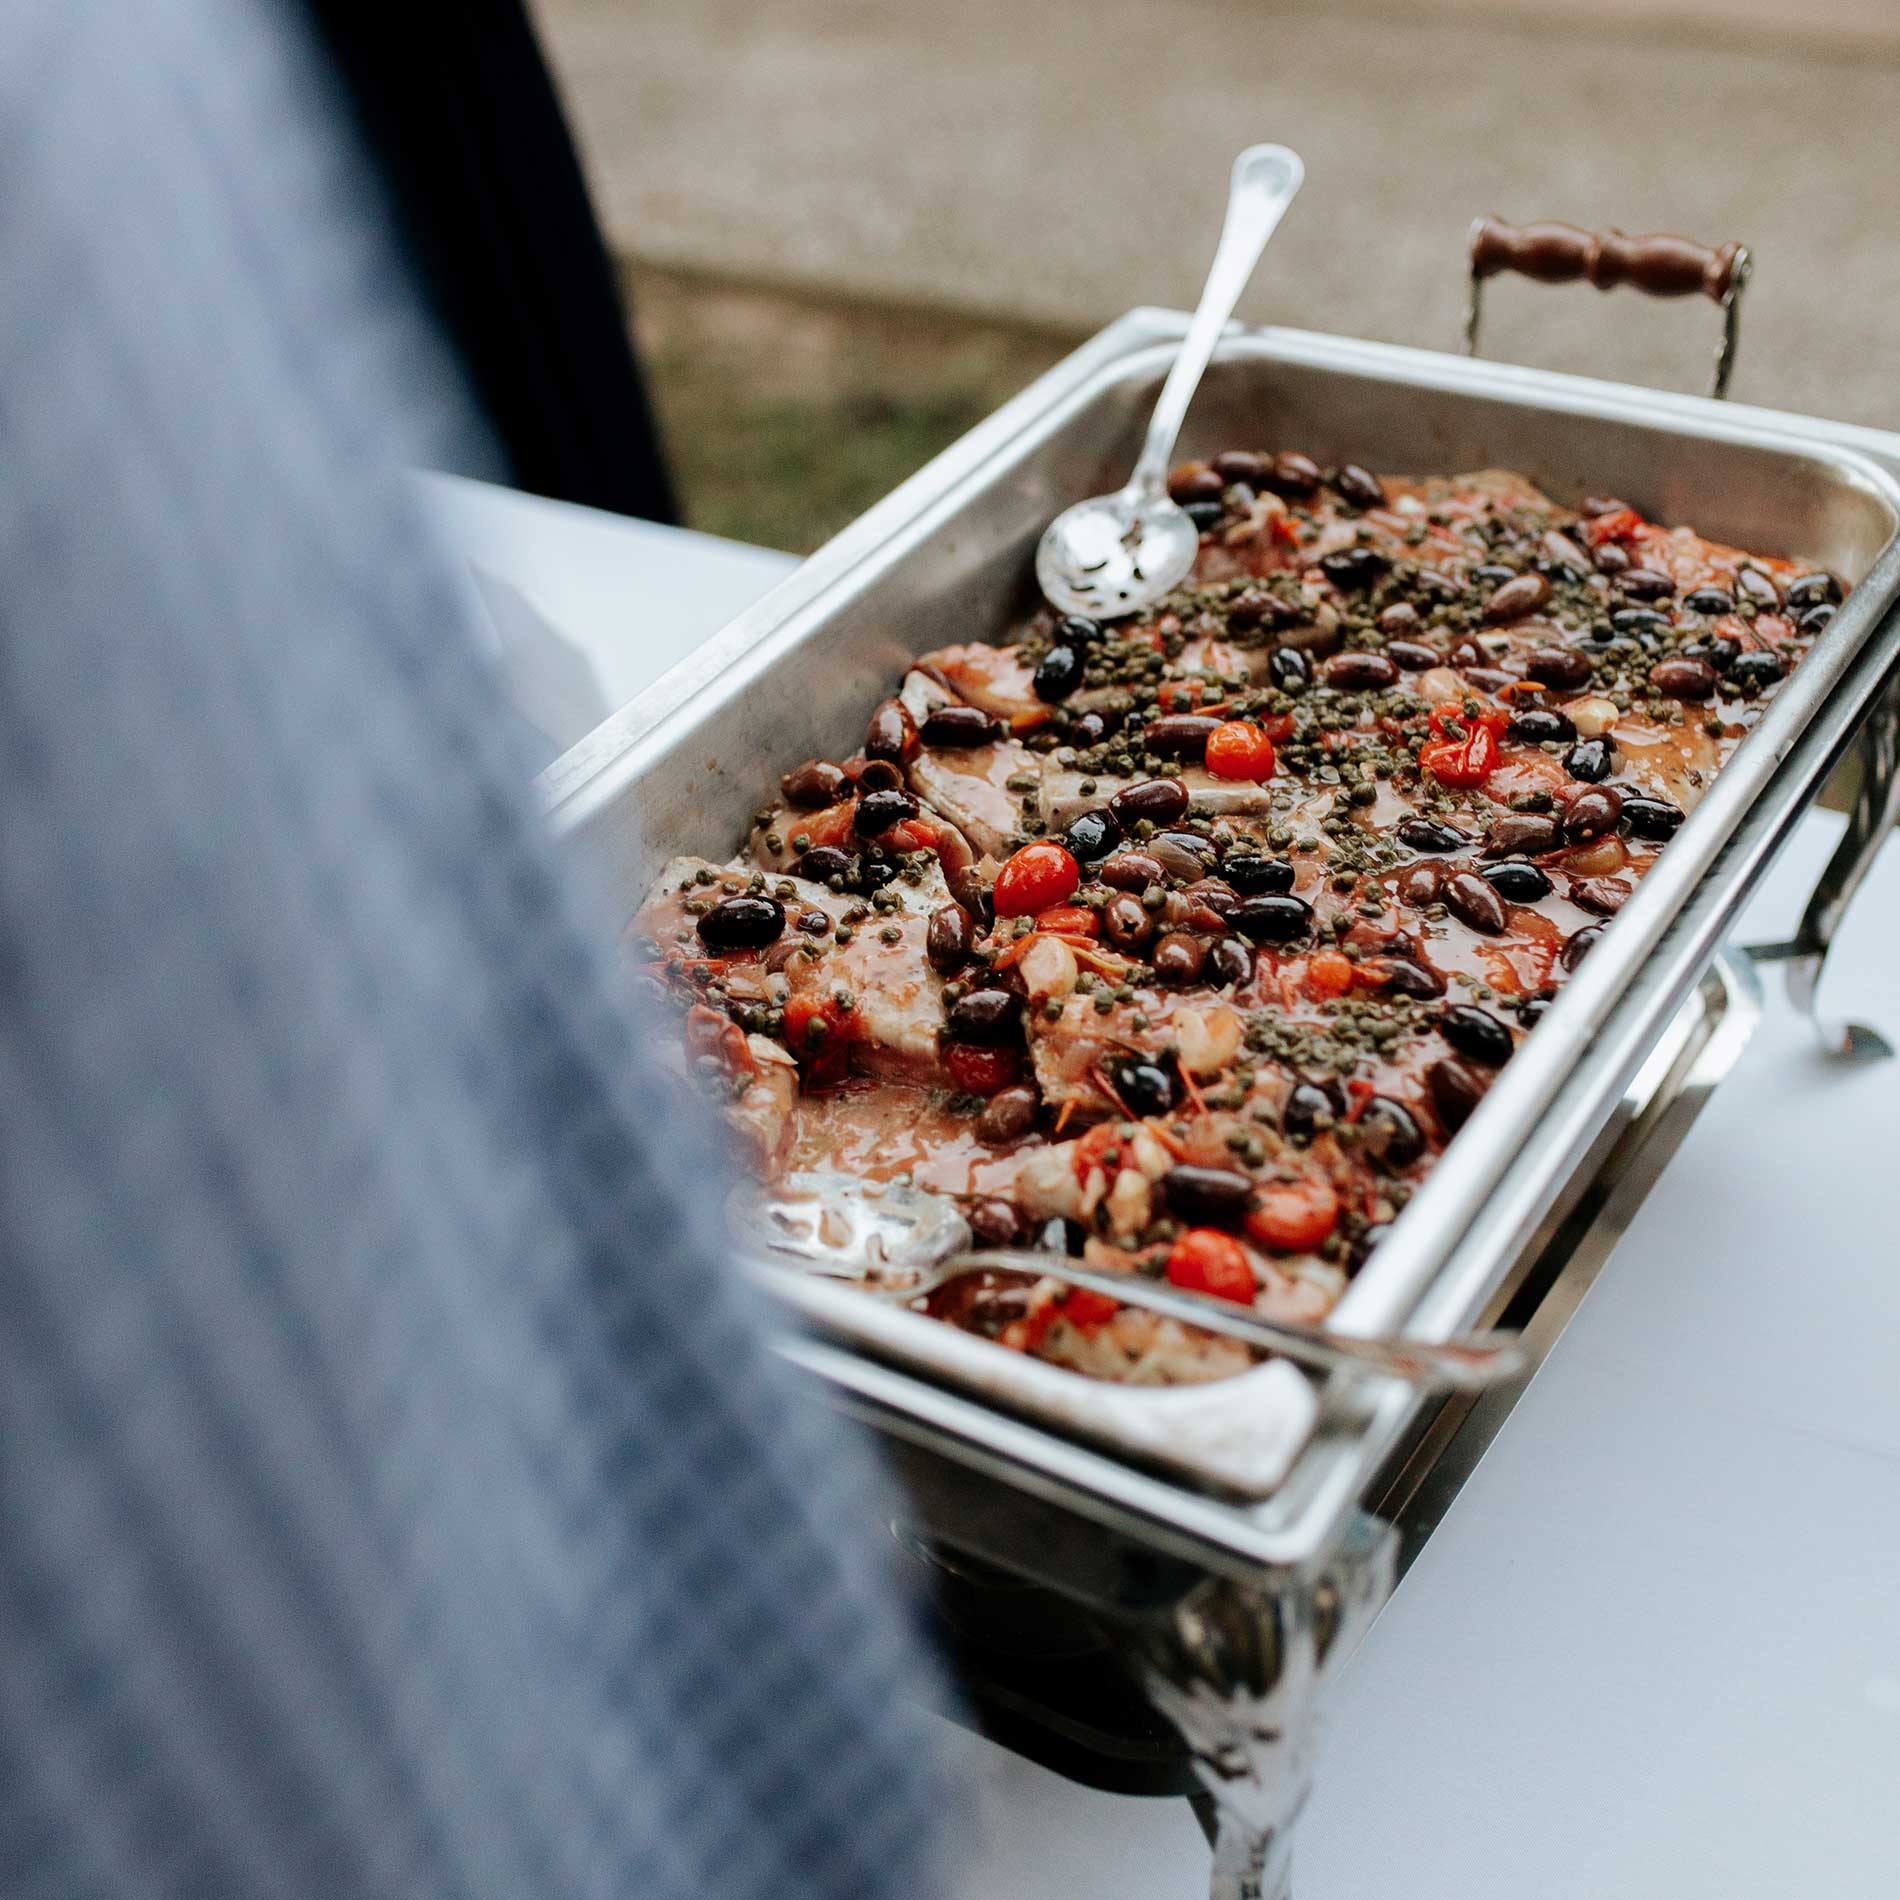 lowcountry-kitchen-catering-beaufort-sc-mary-grace-and-judd-kennedy-wedding-ceremony-vegtables.jpg